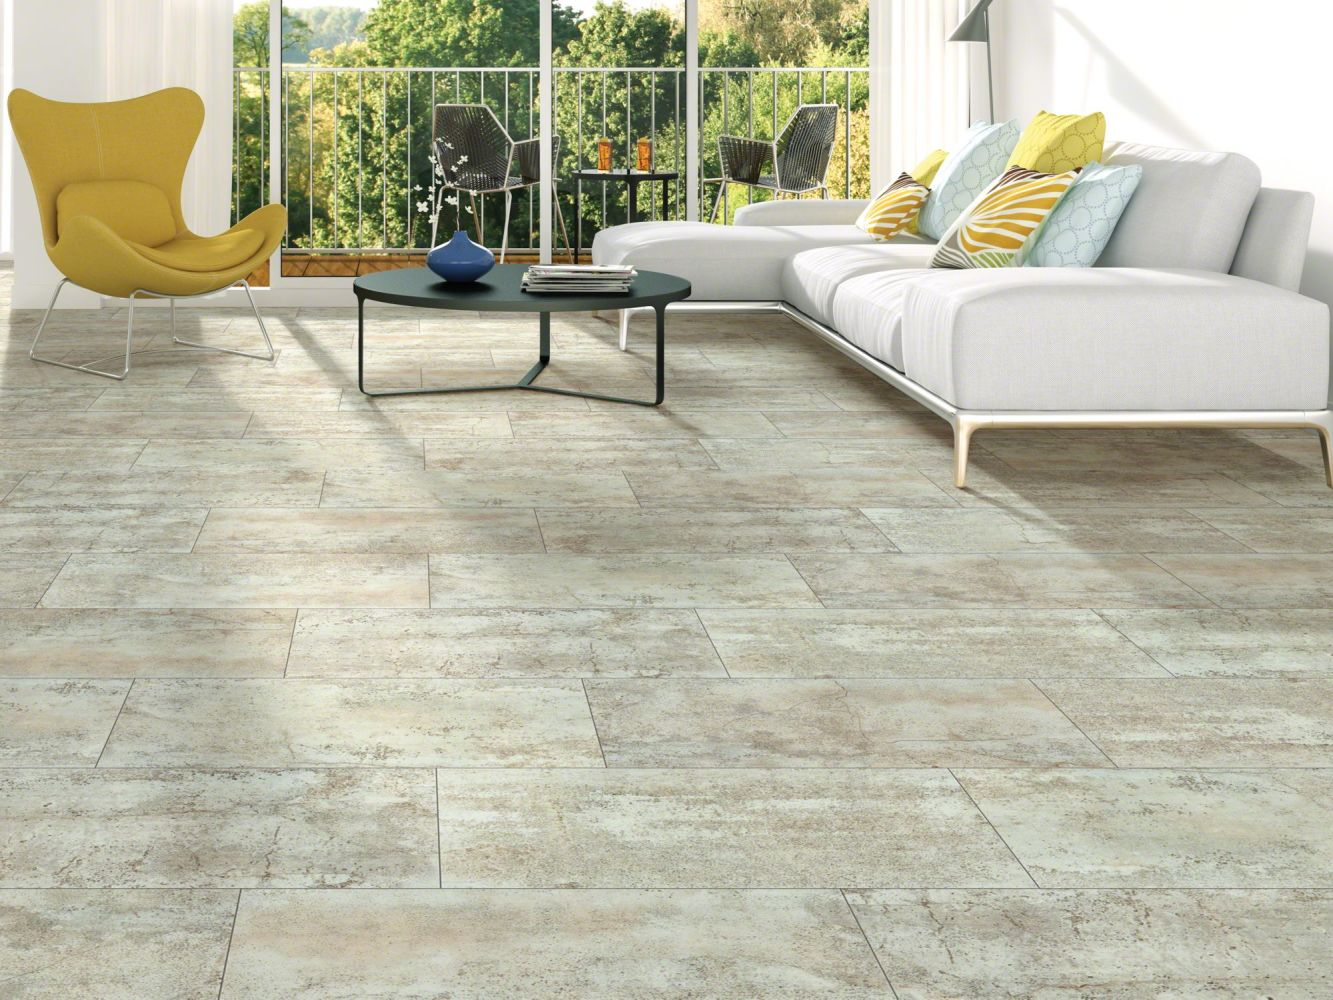 Shaw Floors Resilient Residential Intrepid Tile Plus Prairie 00148_2026V